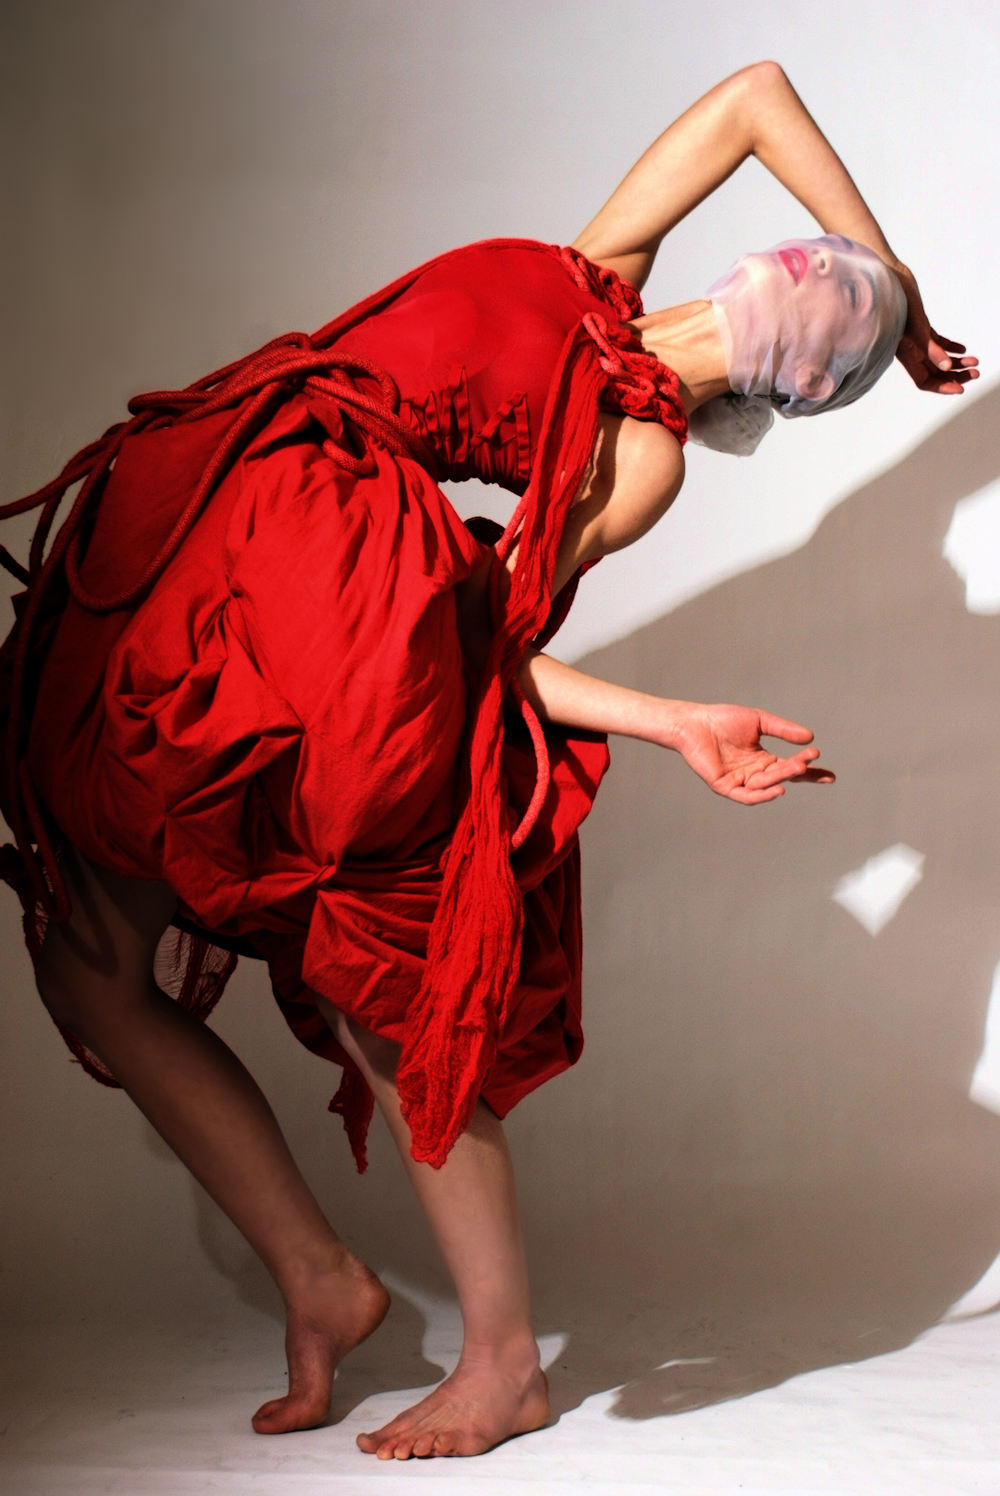 ALT=%22SCHIZOPHRENIC-EXPERIENCE-COUTURE-RED-GOWN-5%22.jpg